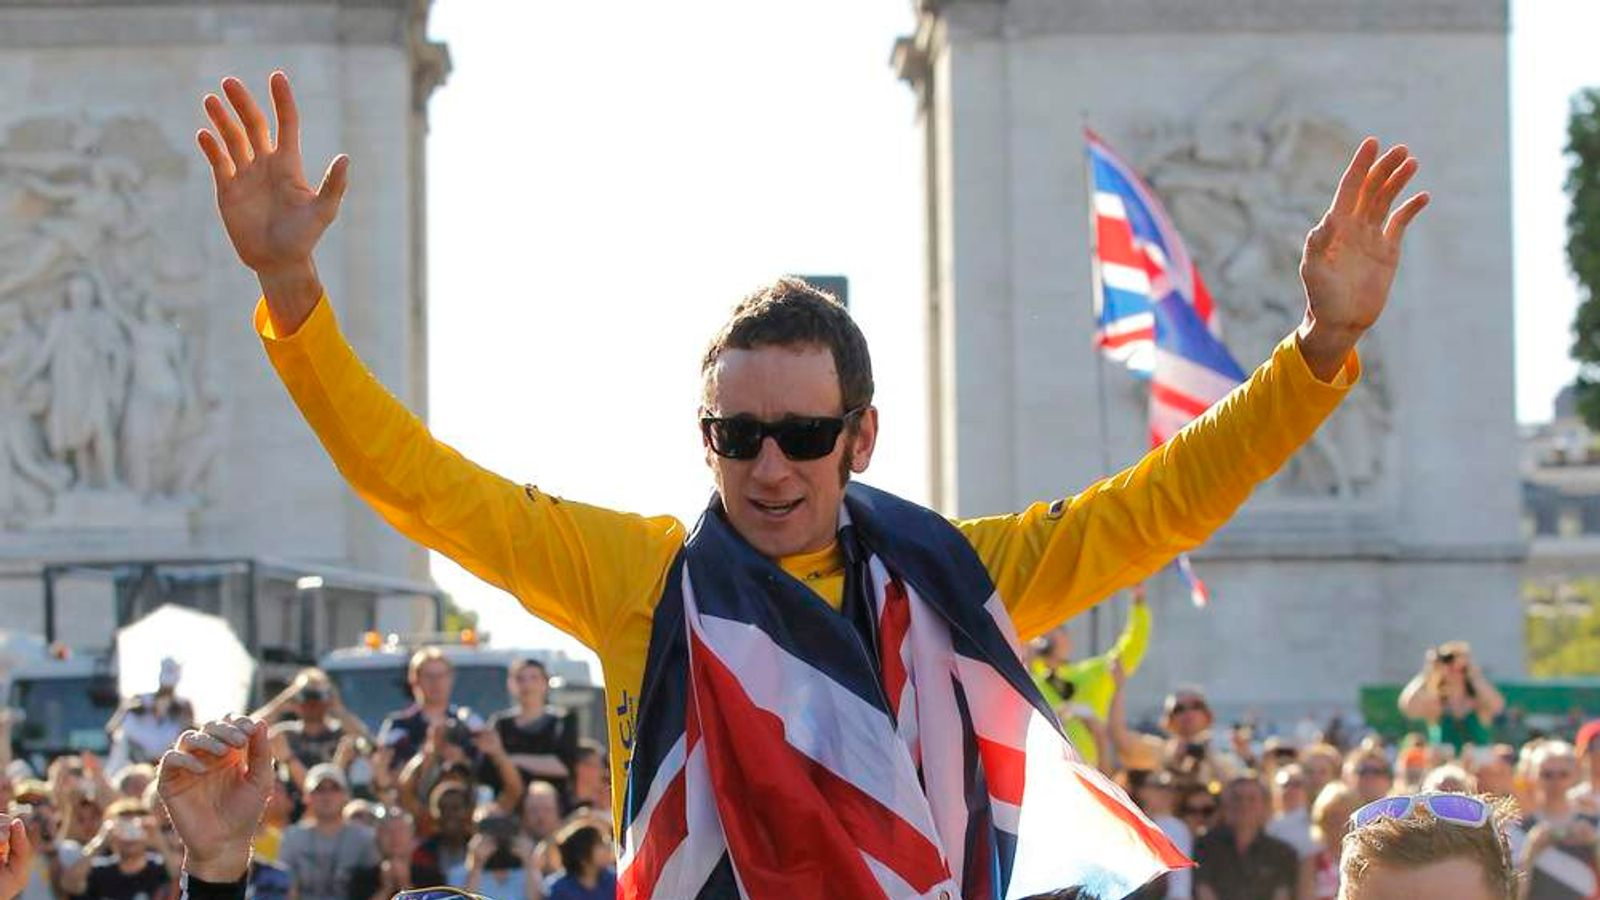 Bradley Wiggins celebrates winning Tour de France